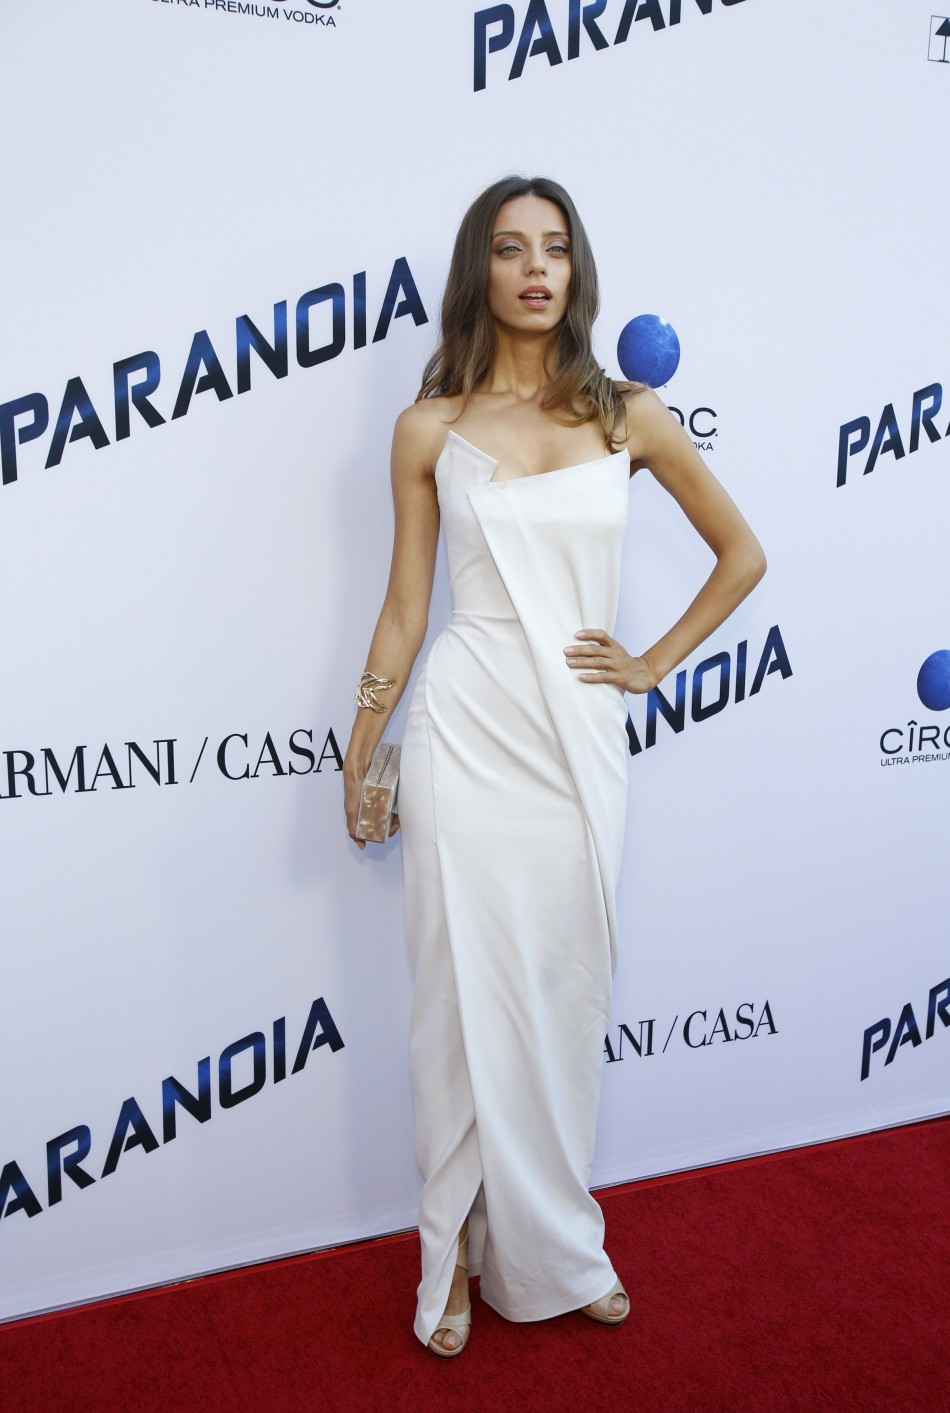 Cast member Angela Sarafyan poses at the premiere of